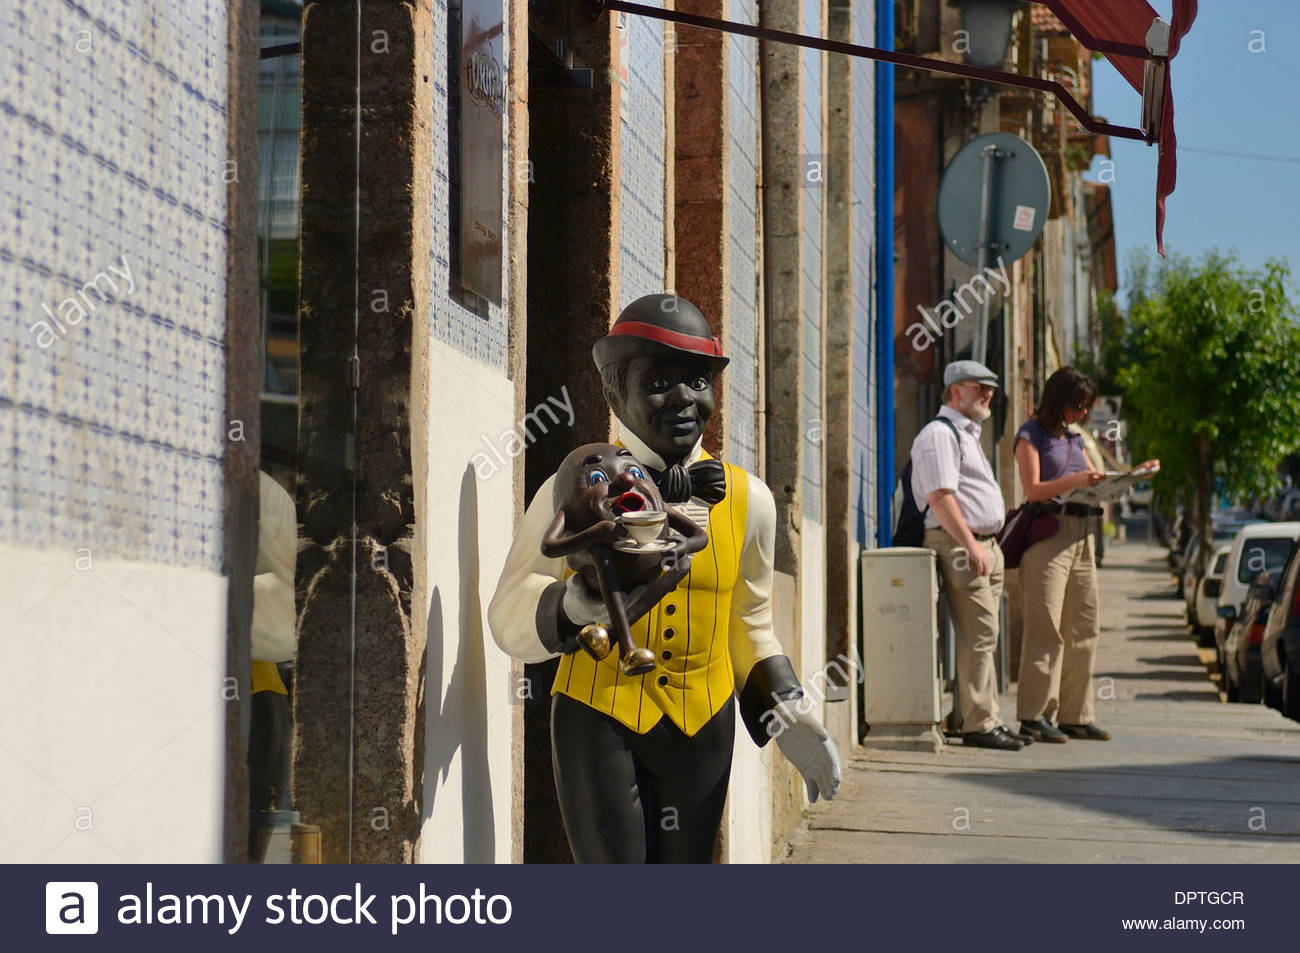 A caricature model of a black man advertising a coffee house, Braga, Douro Valley, Portugal - Stock Image